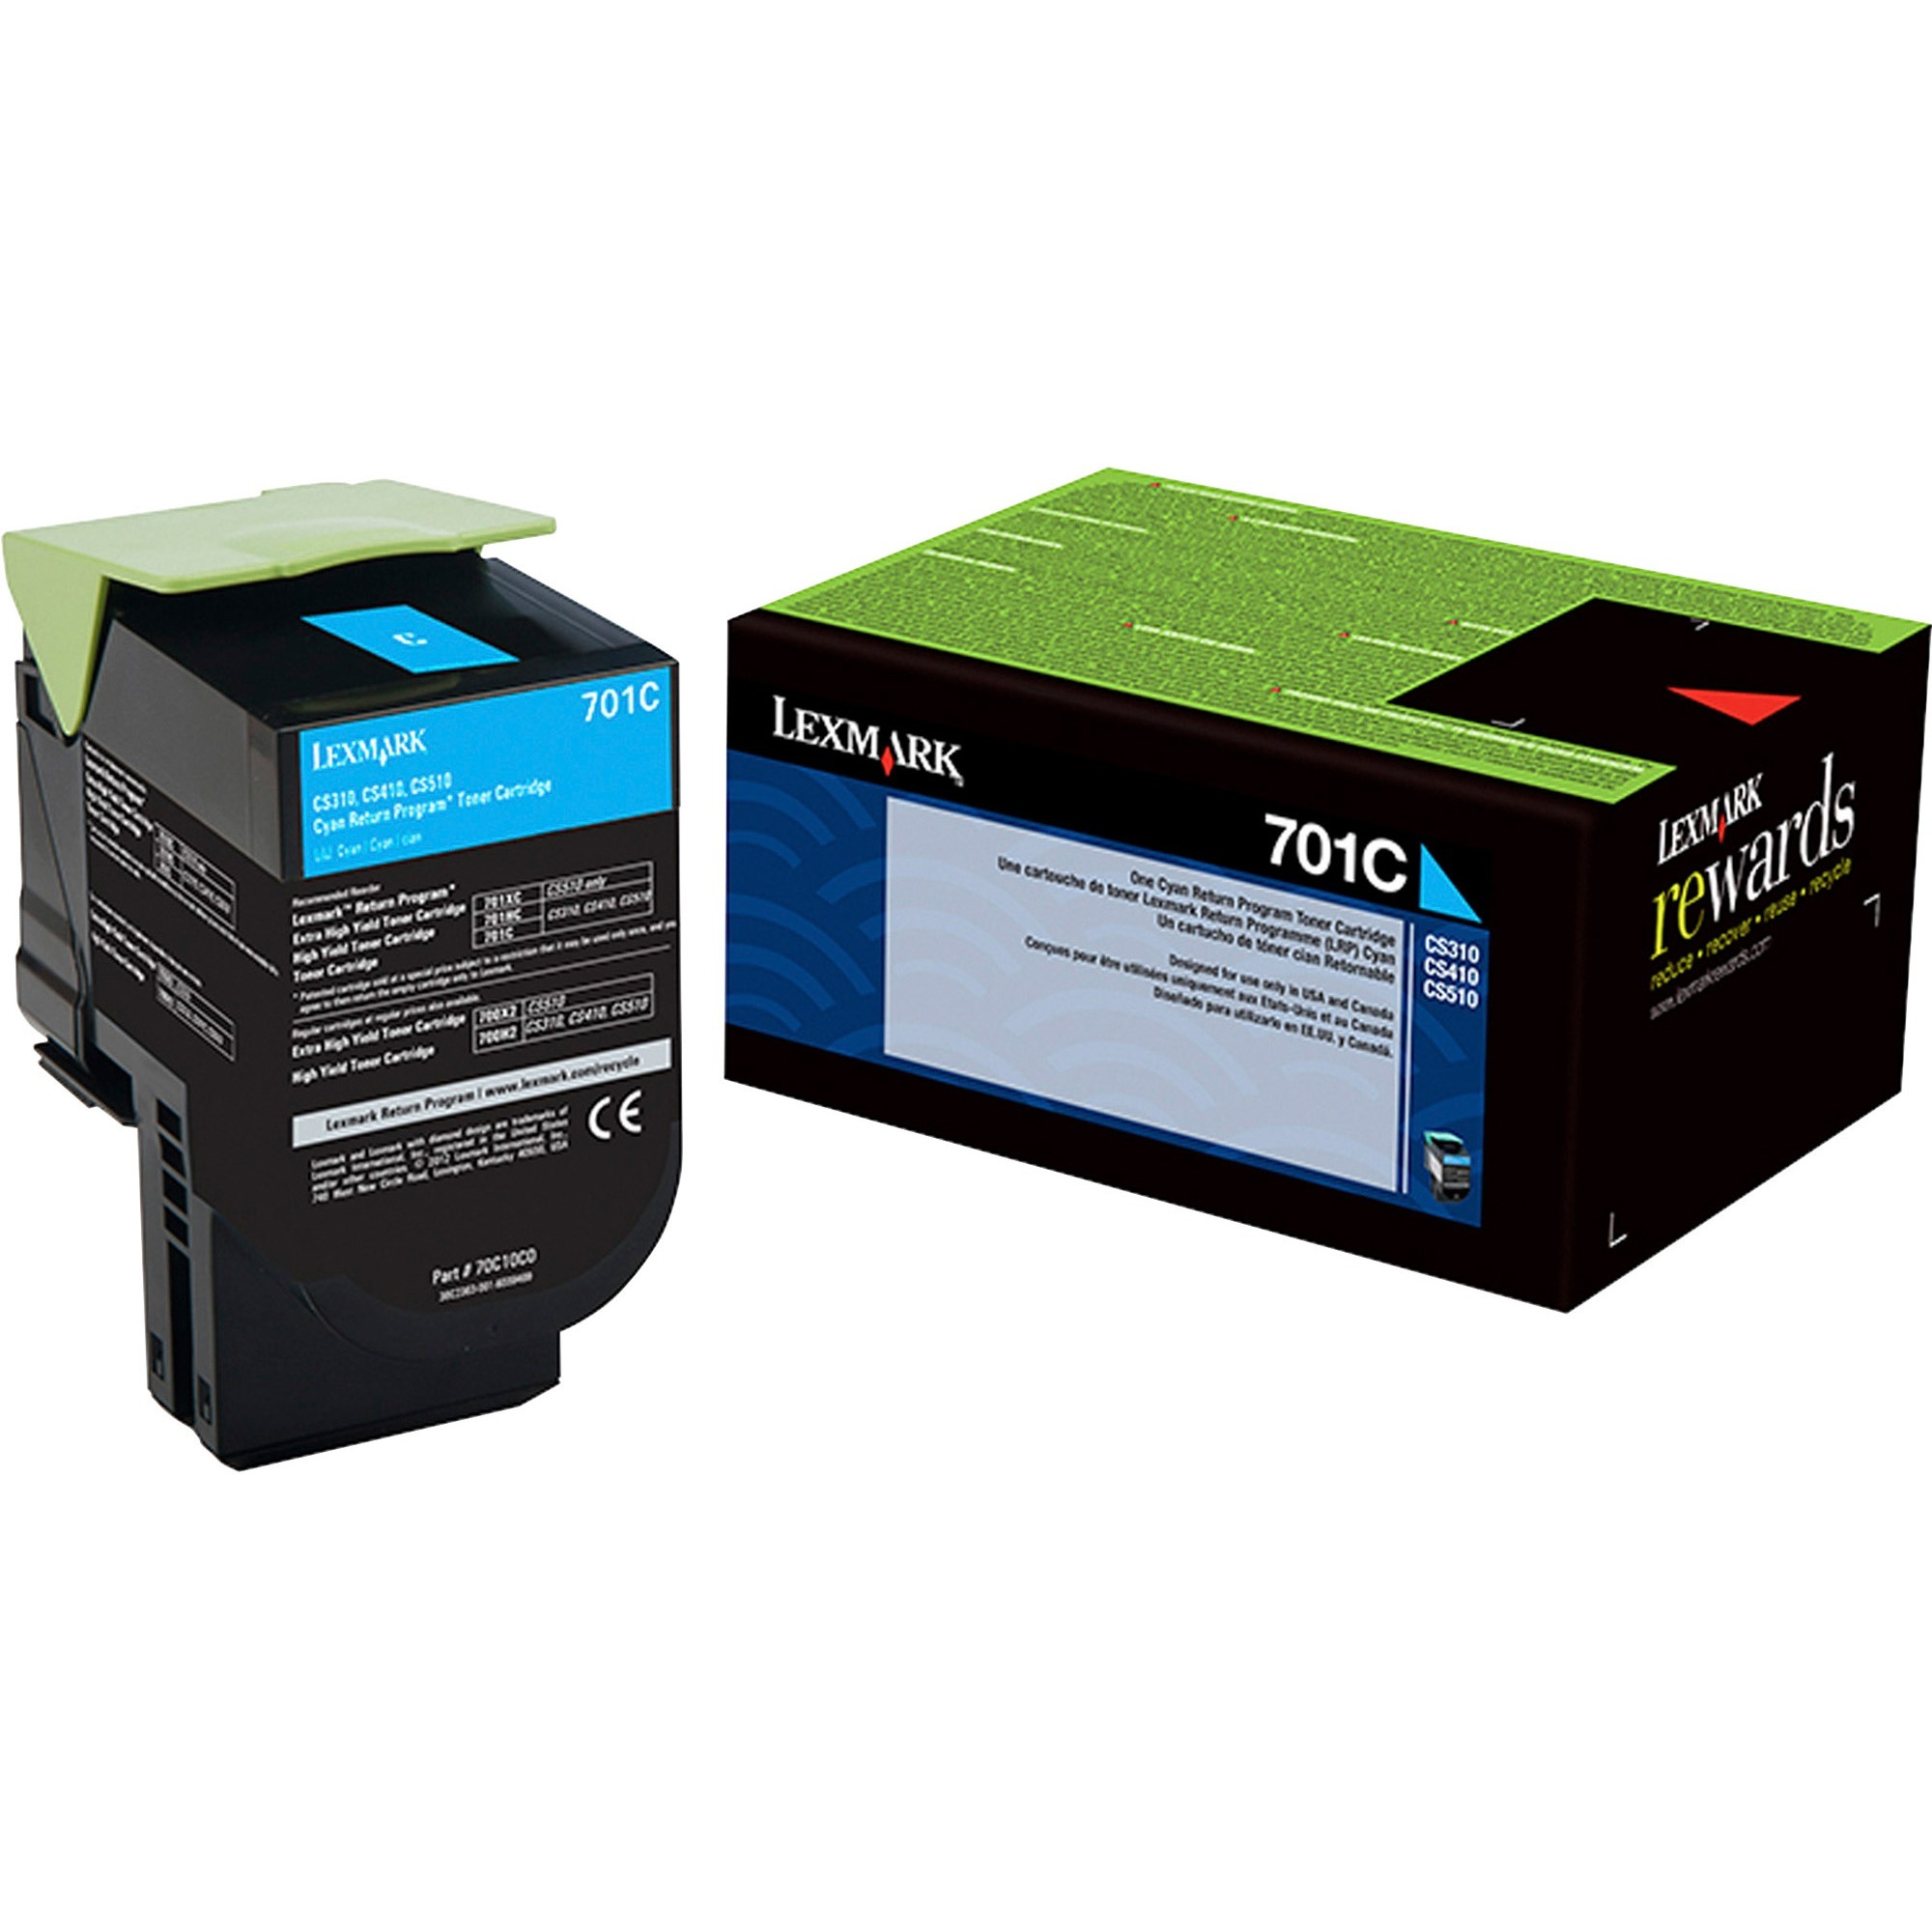 West Coast Office Supplies :: Technology :: Printers